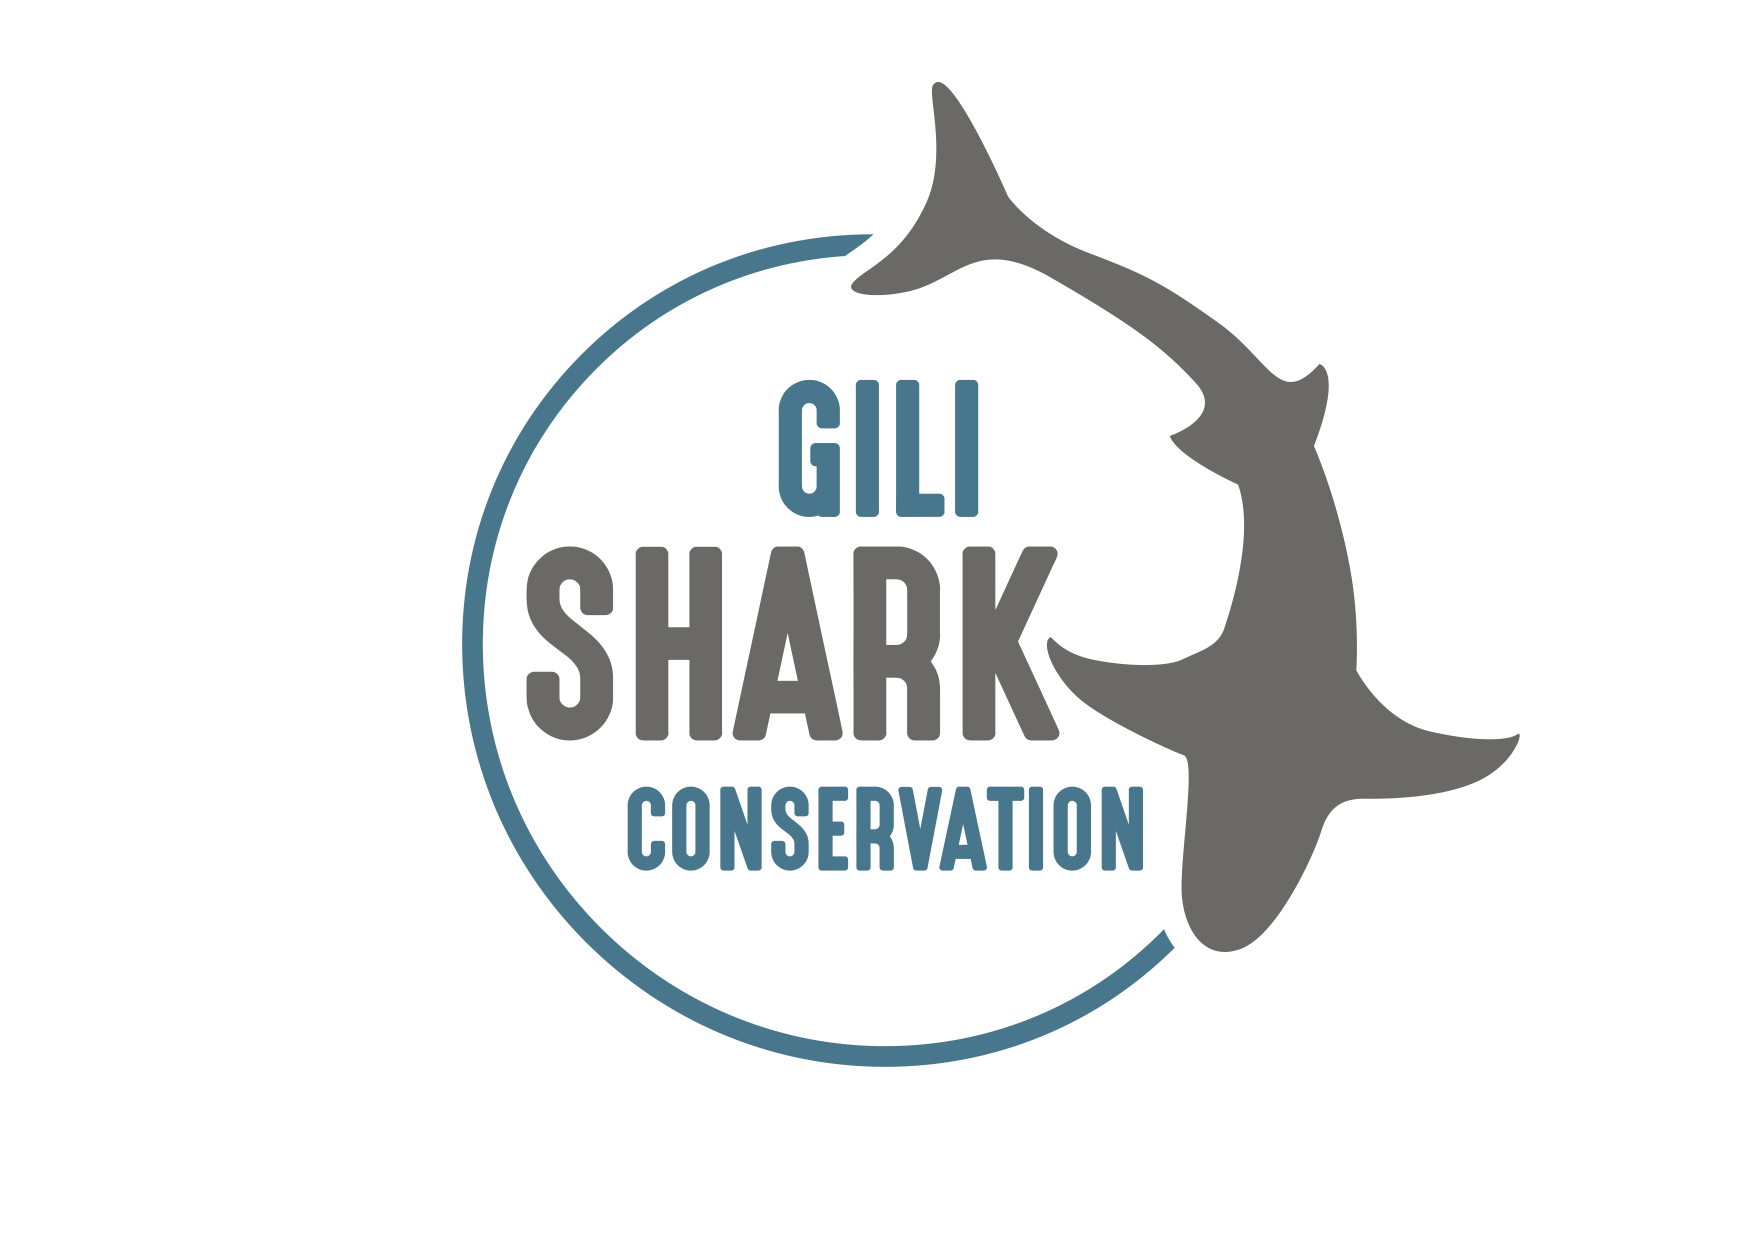 Gili Shark Conservation | Shark & Marine Conservation around the Gili Islands